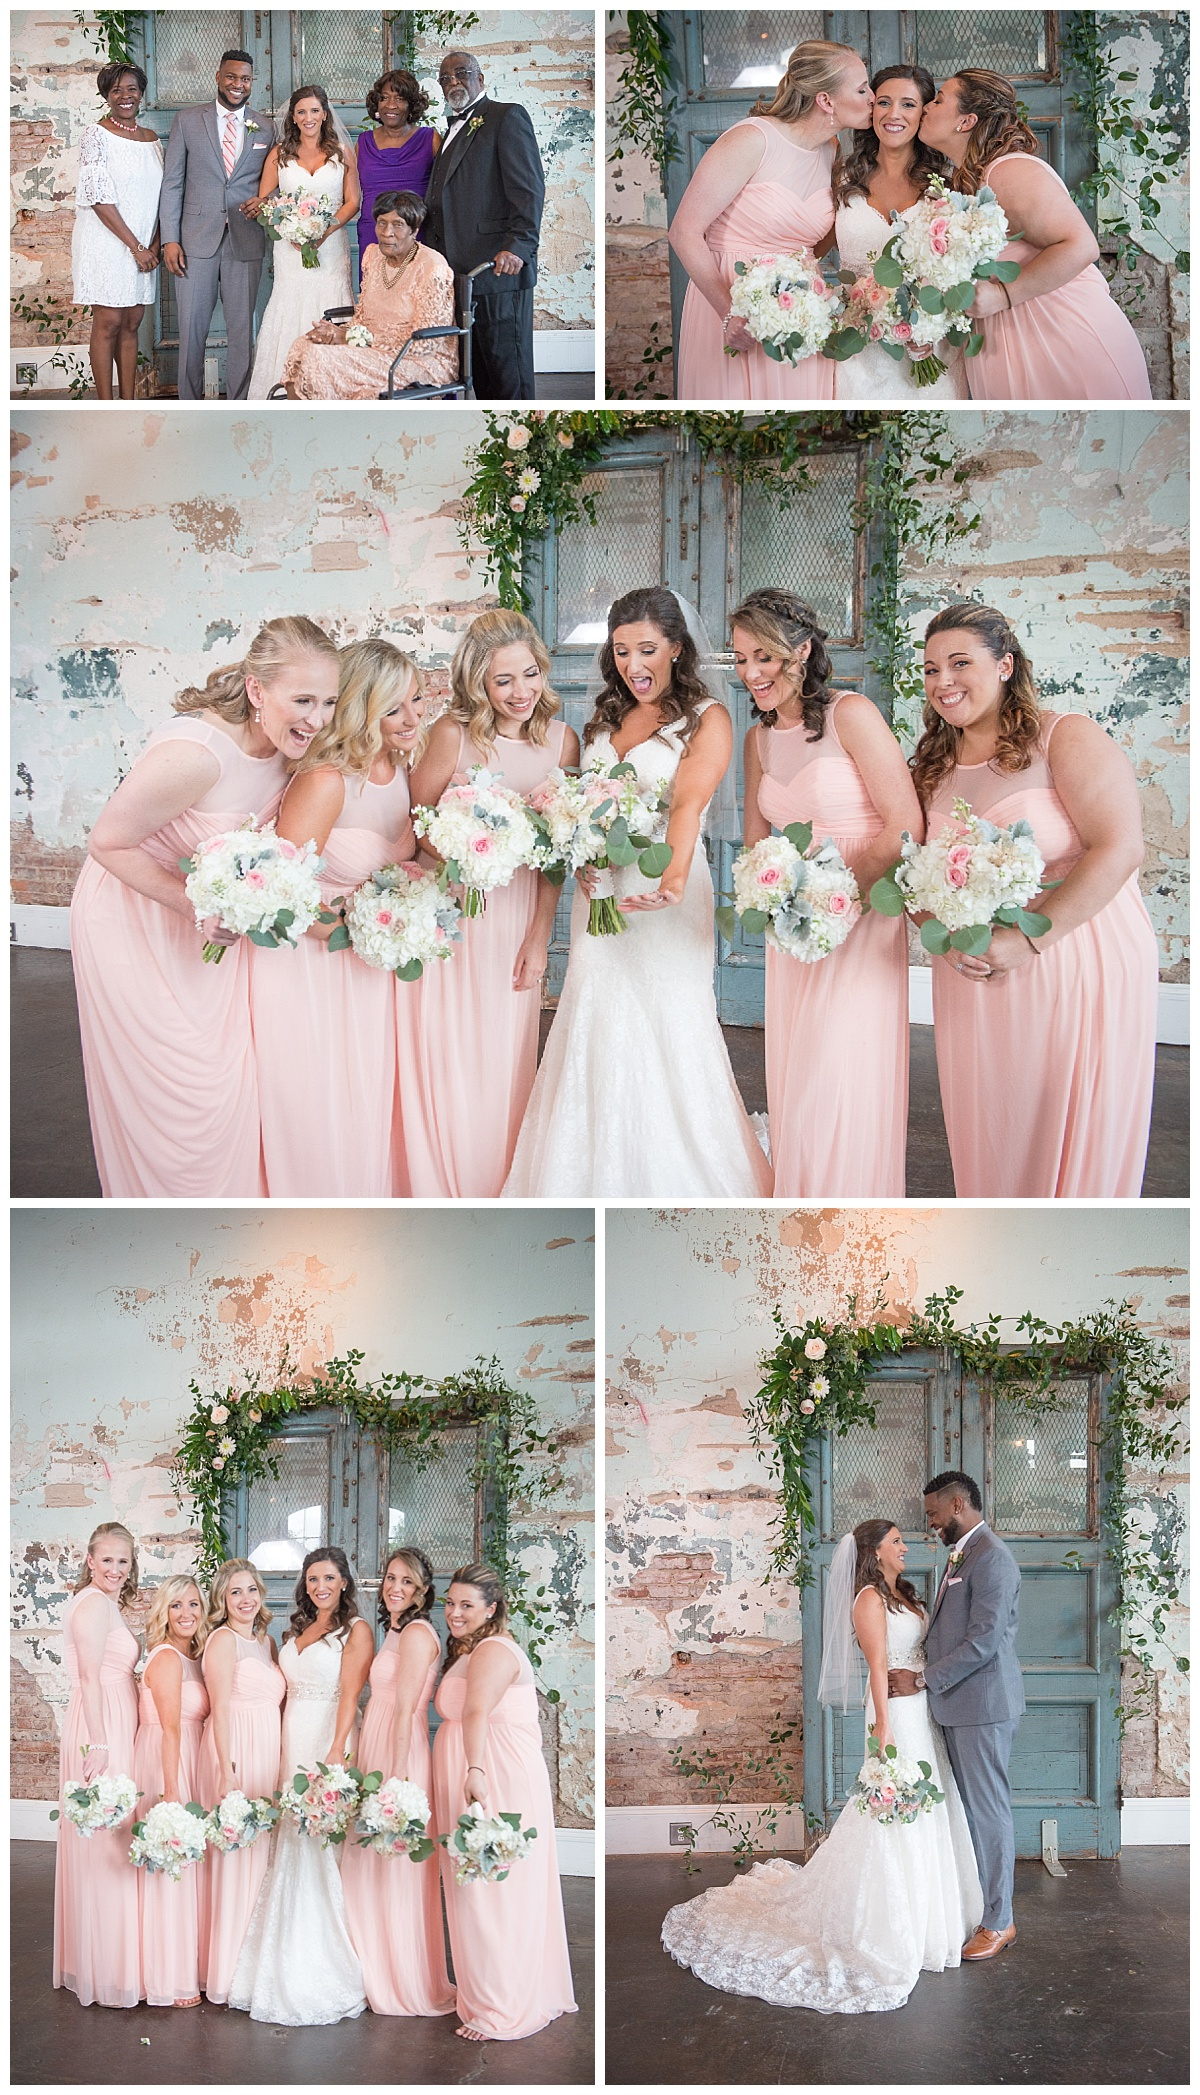 Photos of bridal party by door at 701